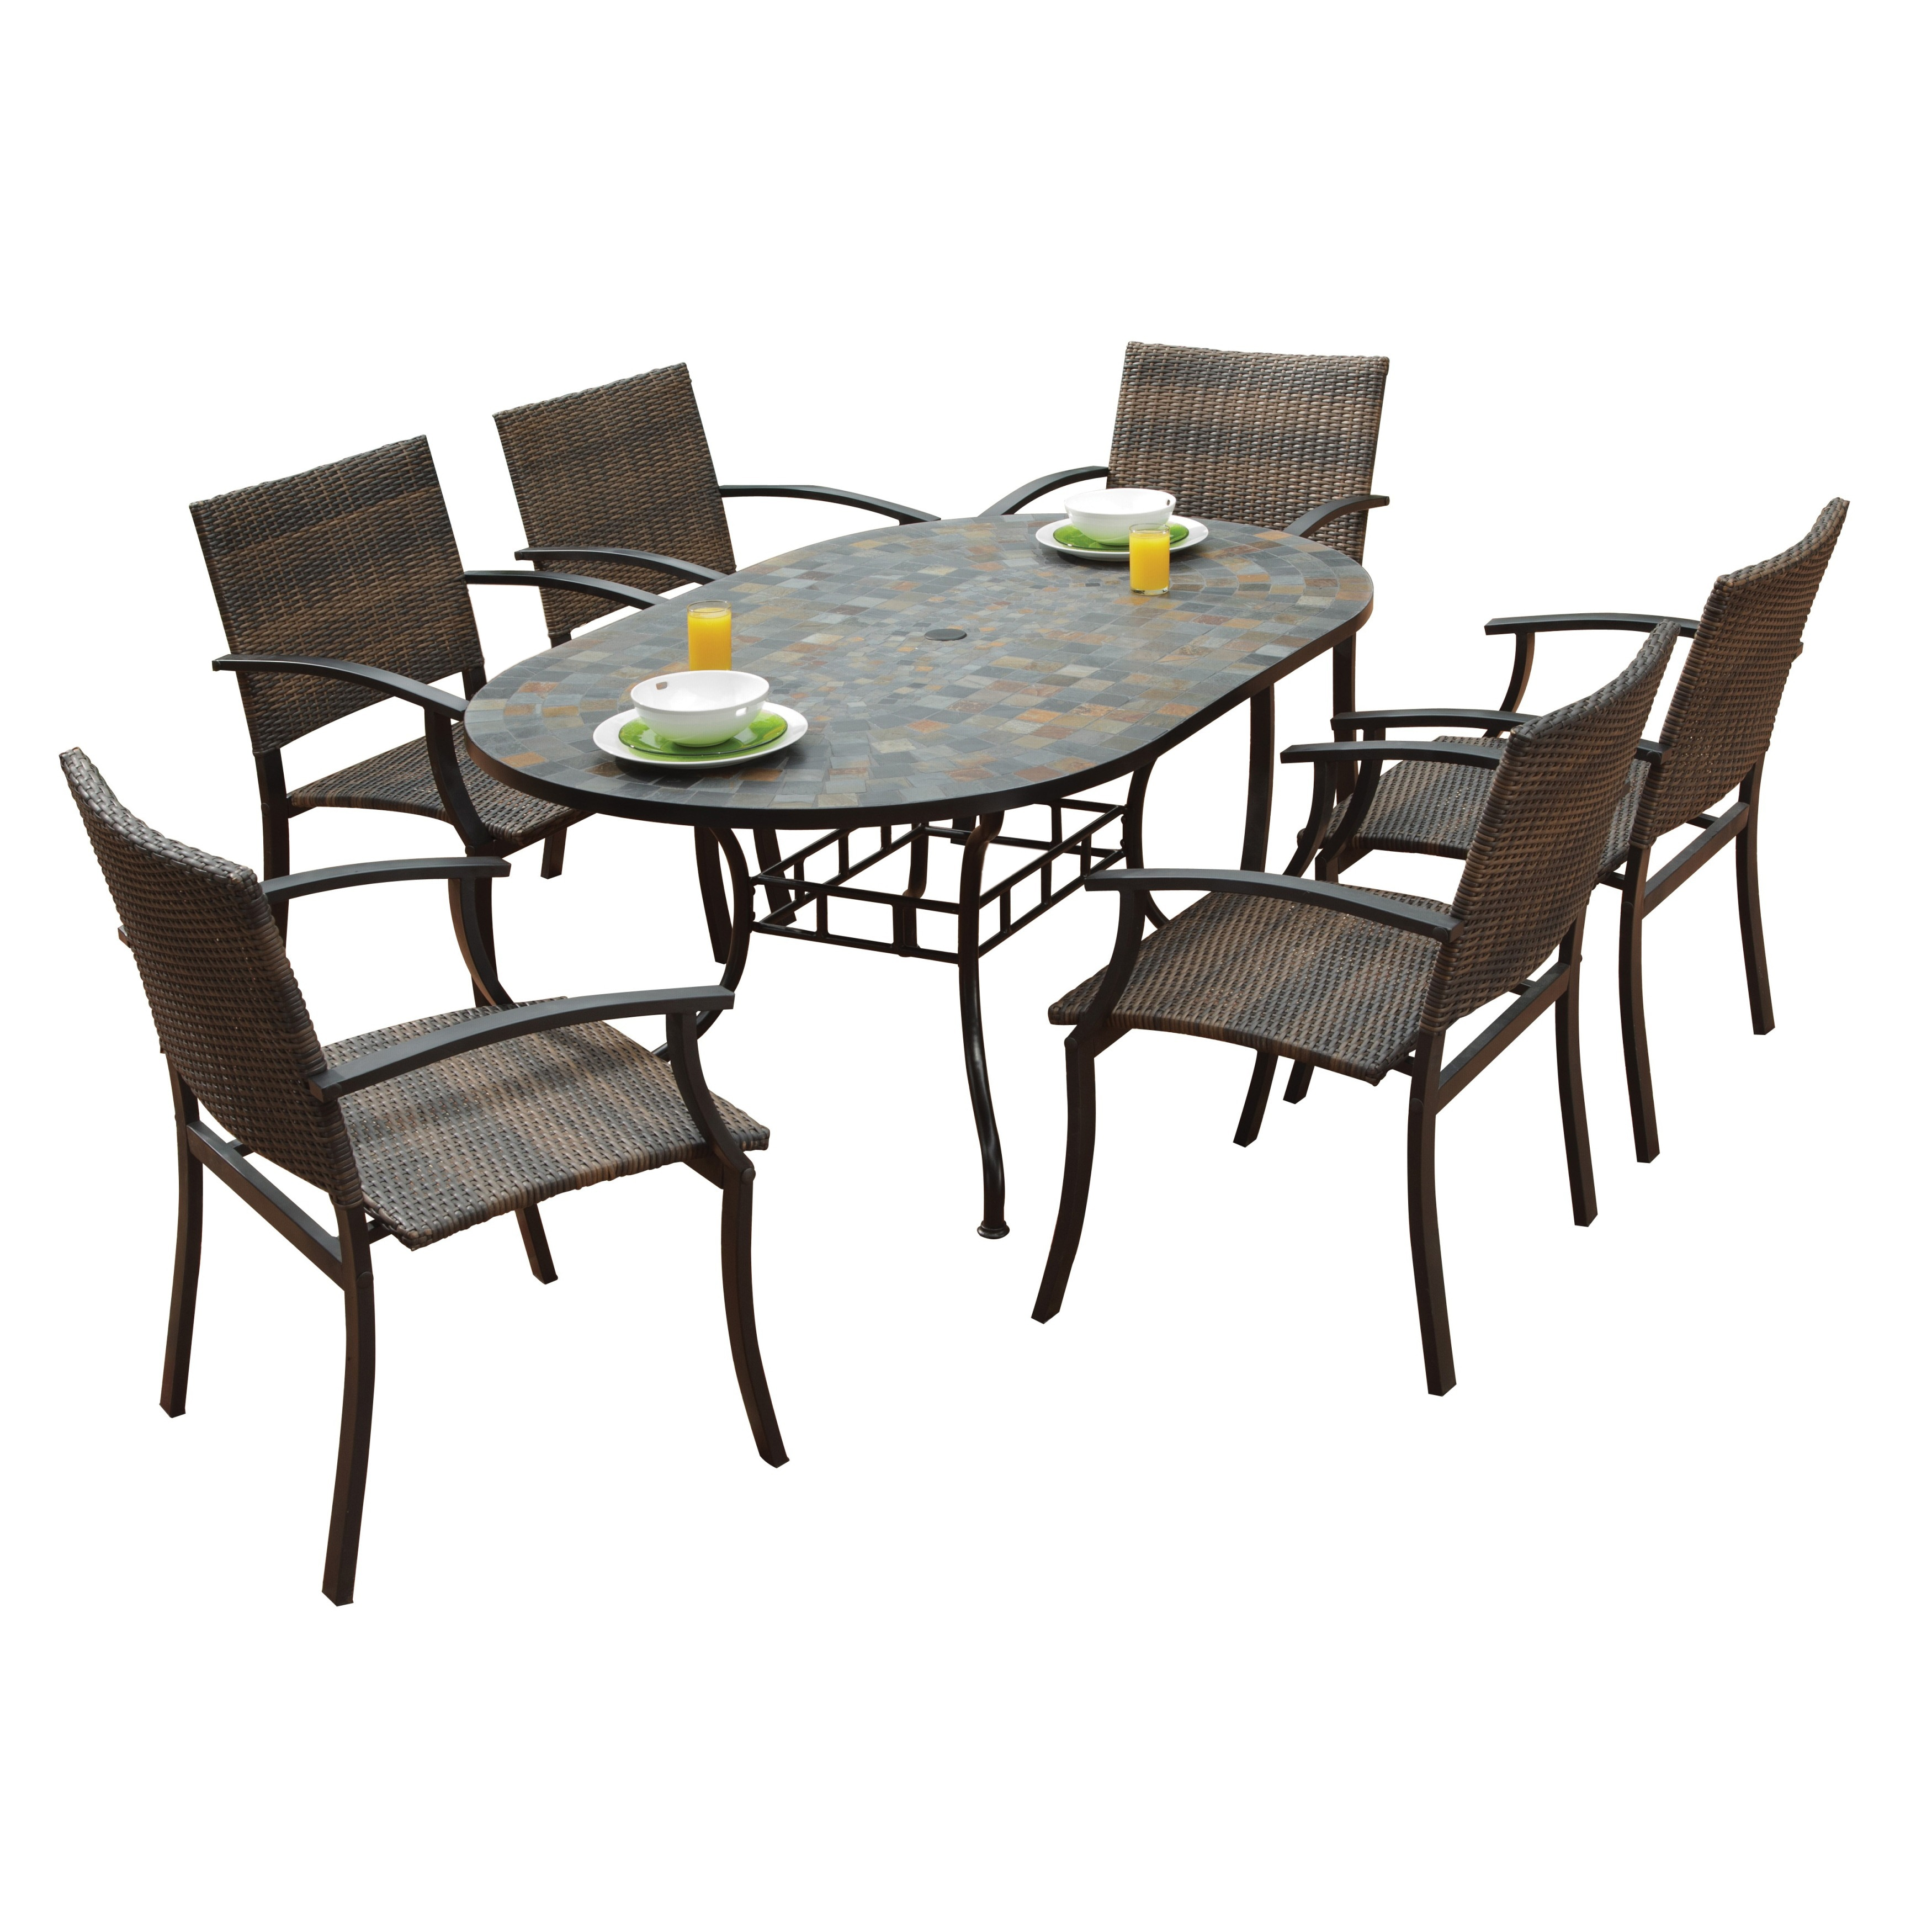 Shop Stone Harbor Oval Dining Table And Newport Arm Chairs 7 Piece Outdoor Set By Home Styles